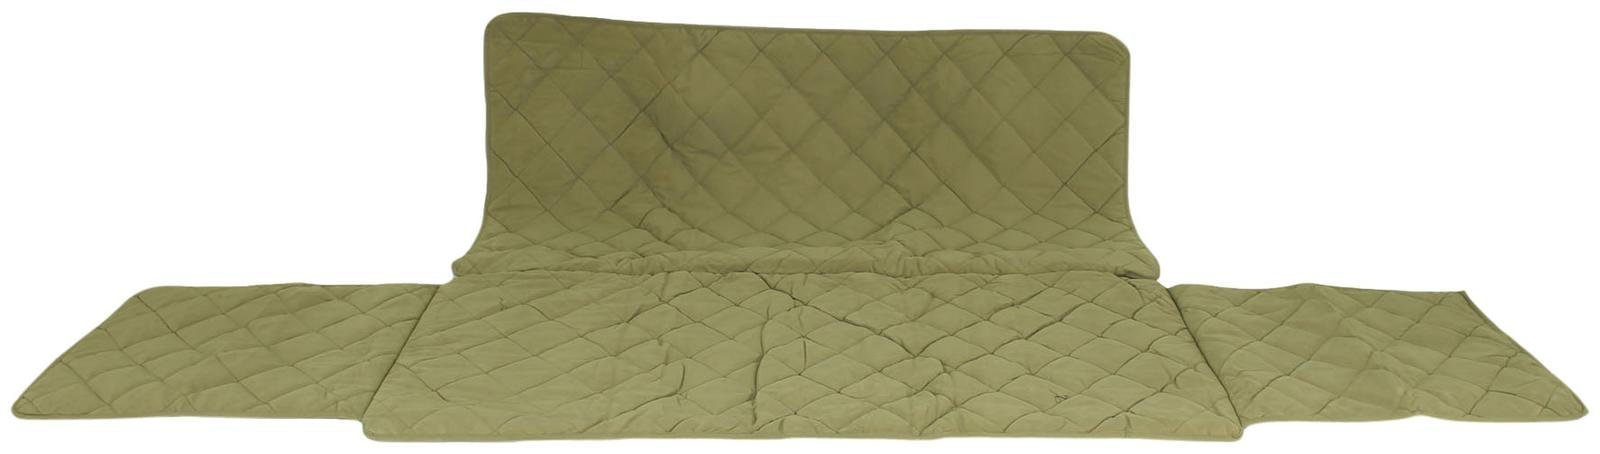 CPC Diamond Quilted Couch Protector, 72-Inch, Sage